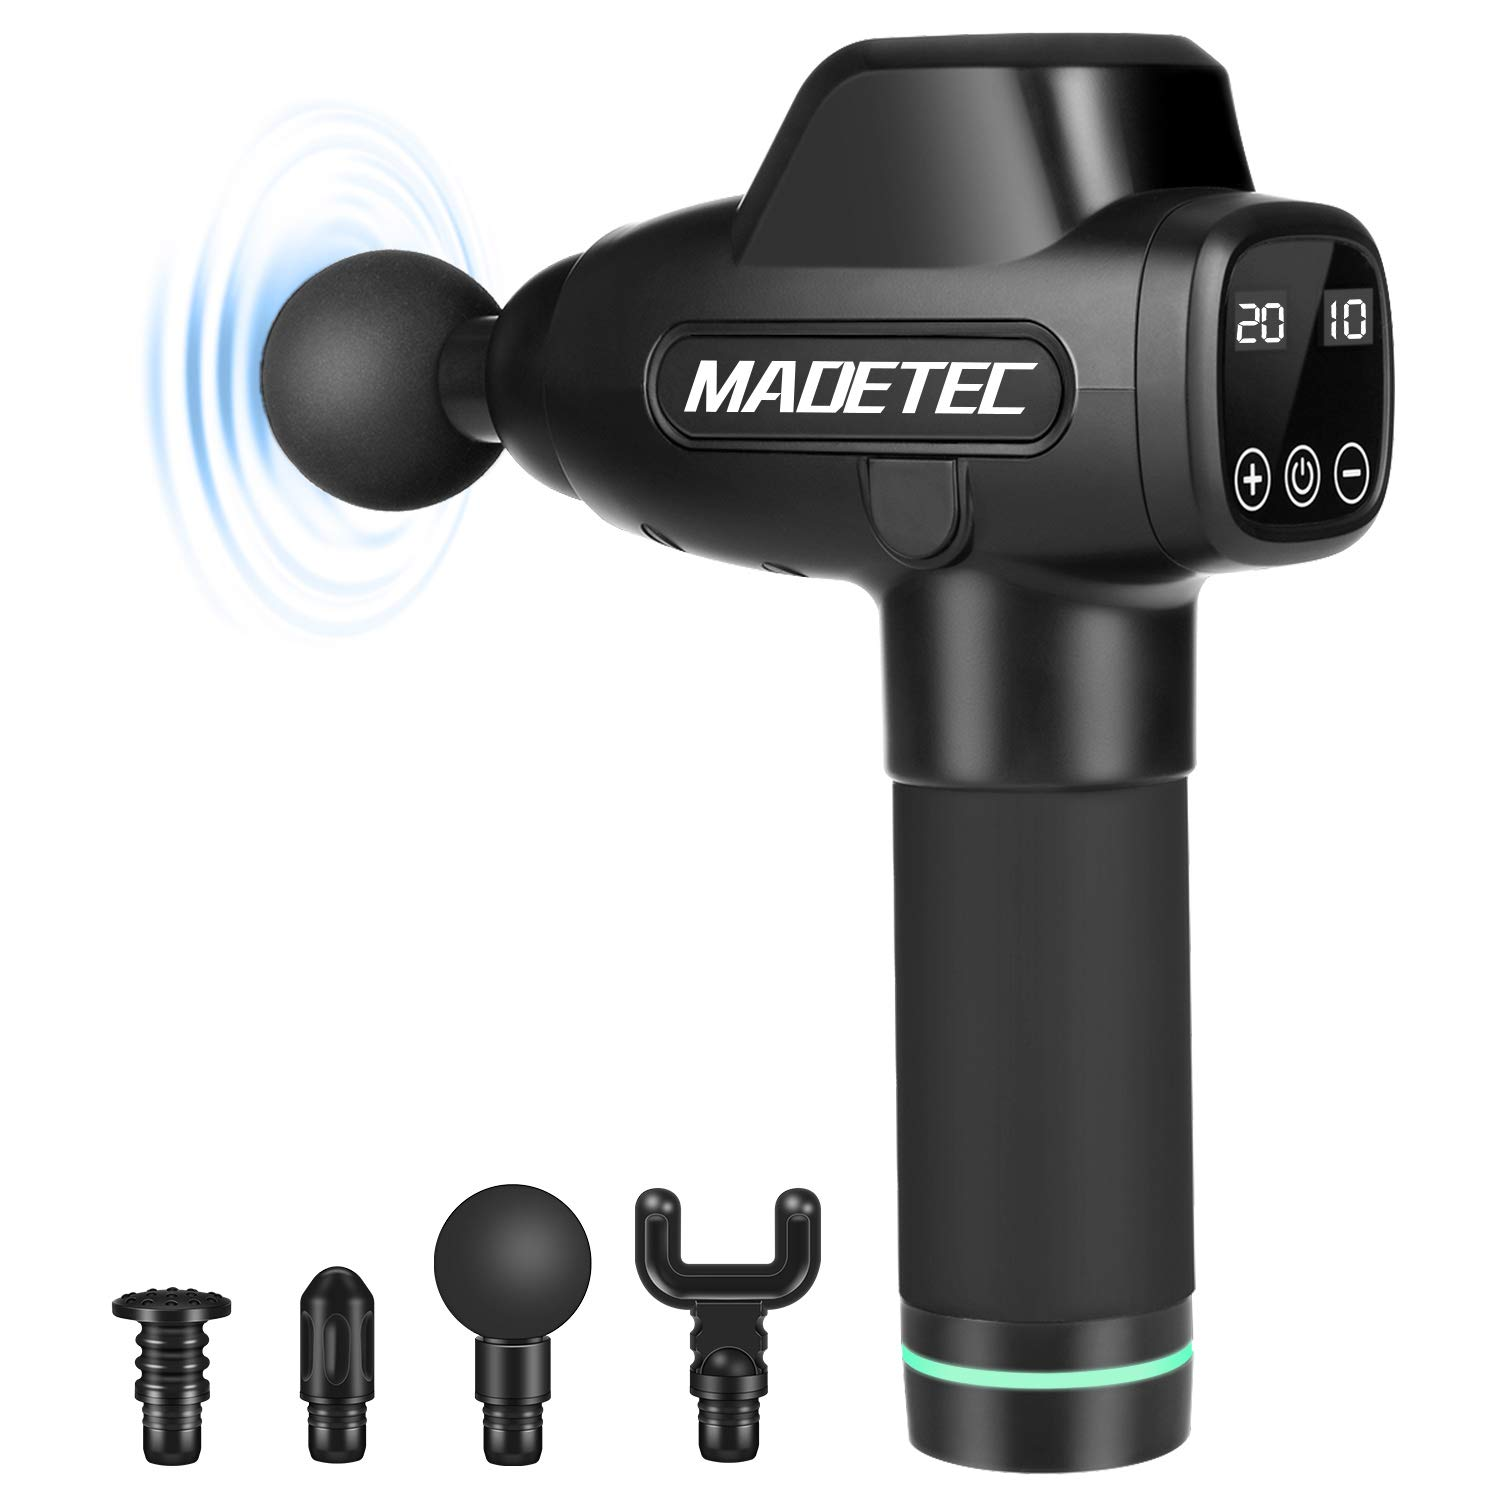 MADETEC Professional Muscle Massage Gun for Athletes and Pain Relief,Handheld Electric Deep Tissue Muscle Massager Percussion Body Back Massager with 20 Adjustable Speed  Price: $199.99 RATING: